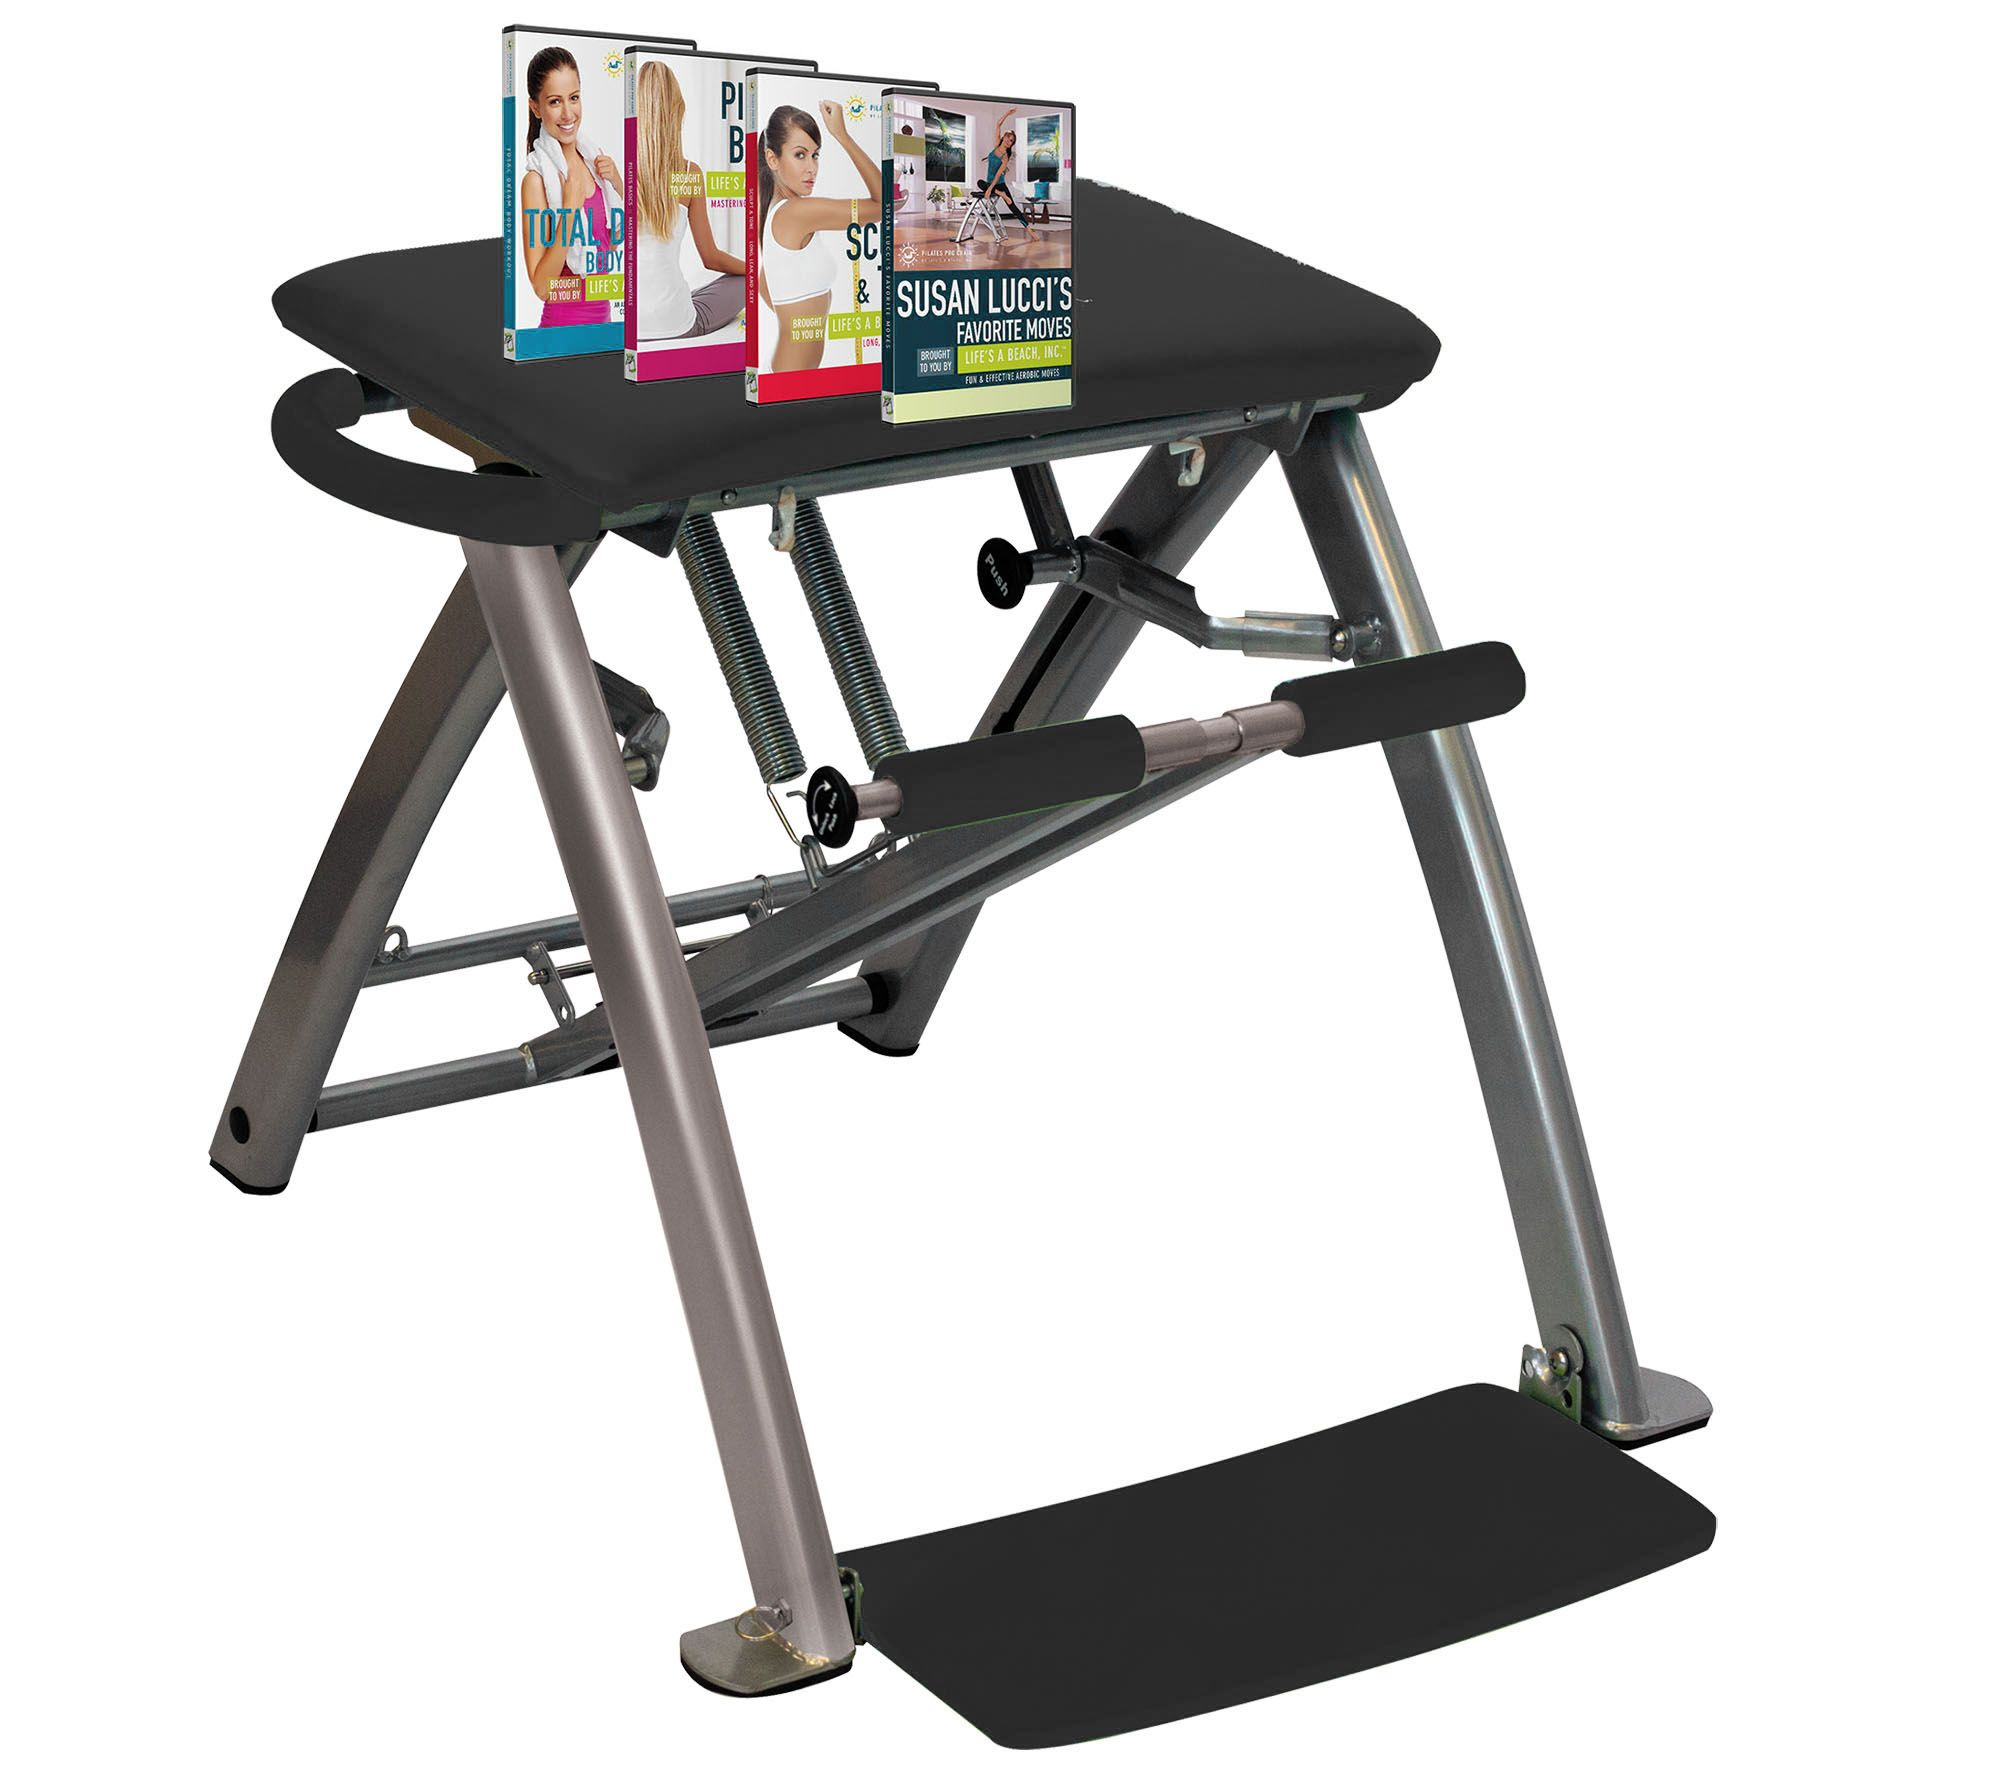 pilates chair for sale ergonomic guidelines pro with 4 dvds by life s a beach page 1 qvc com